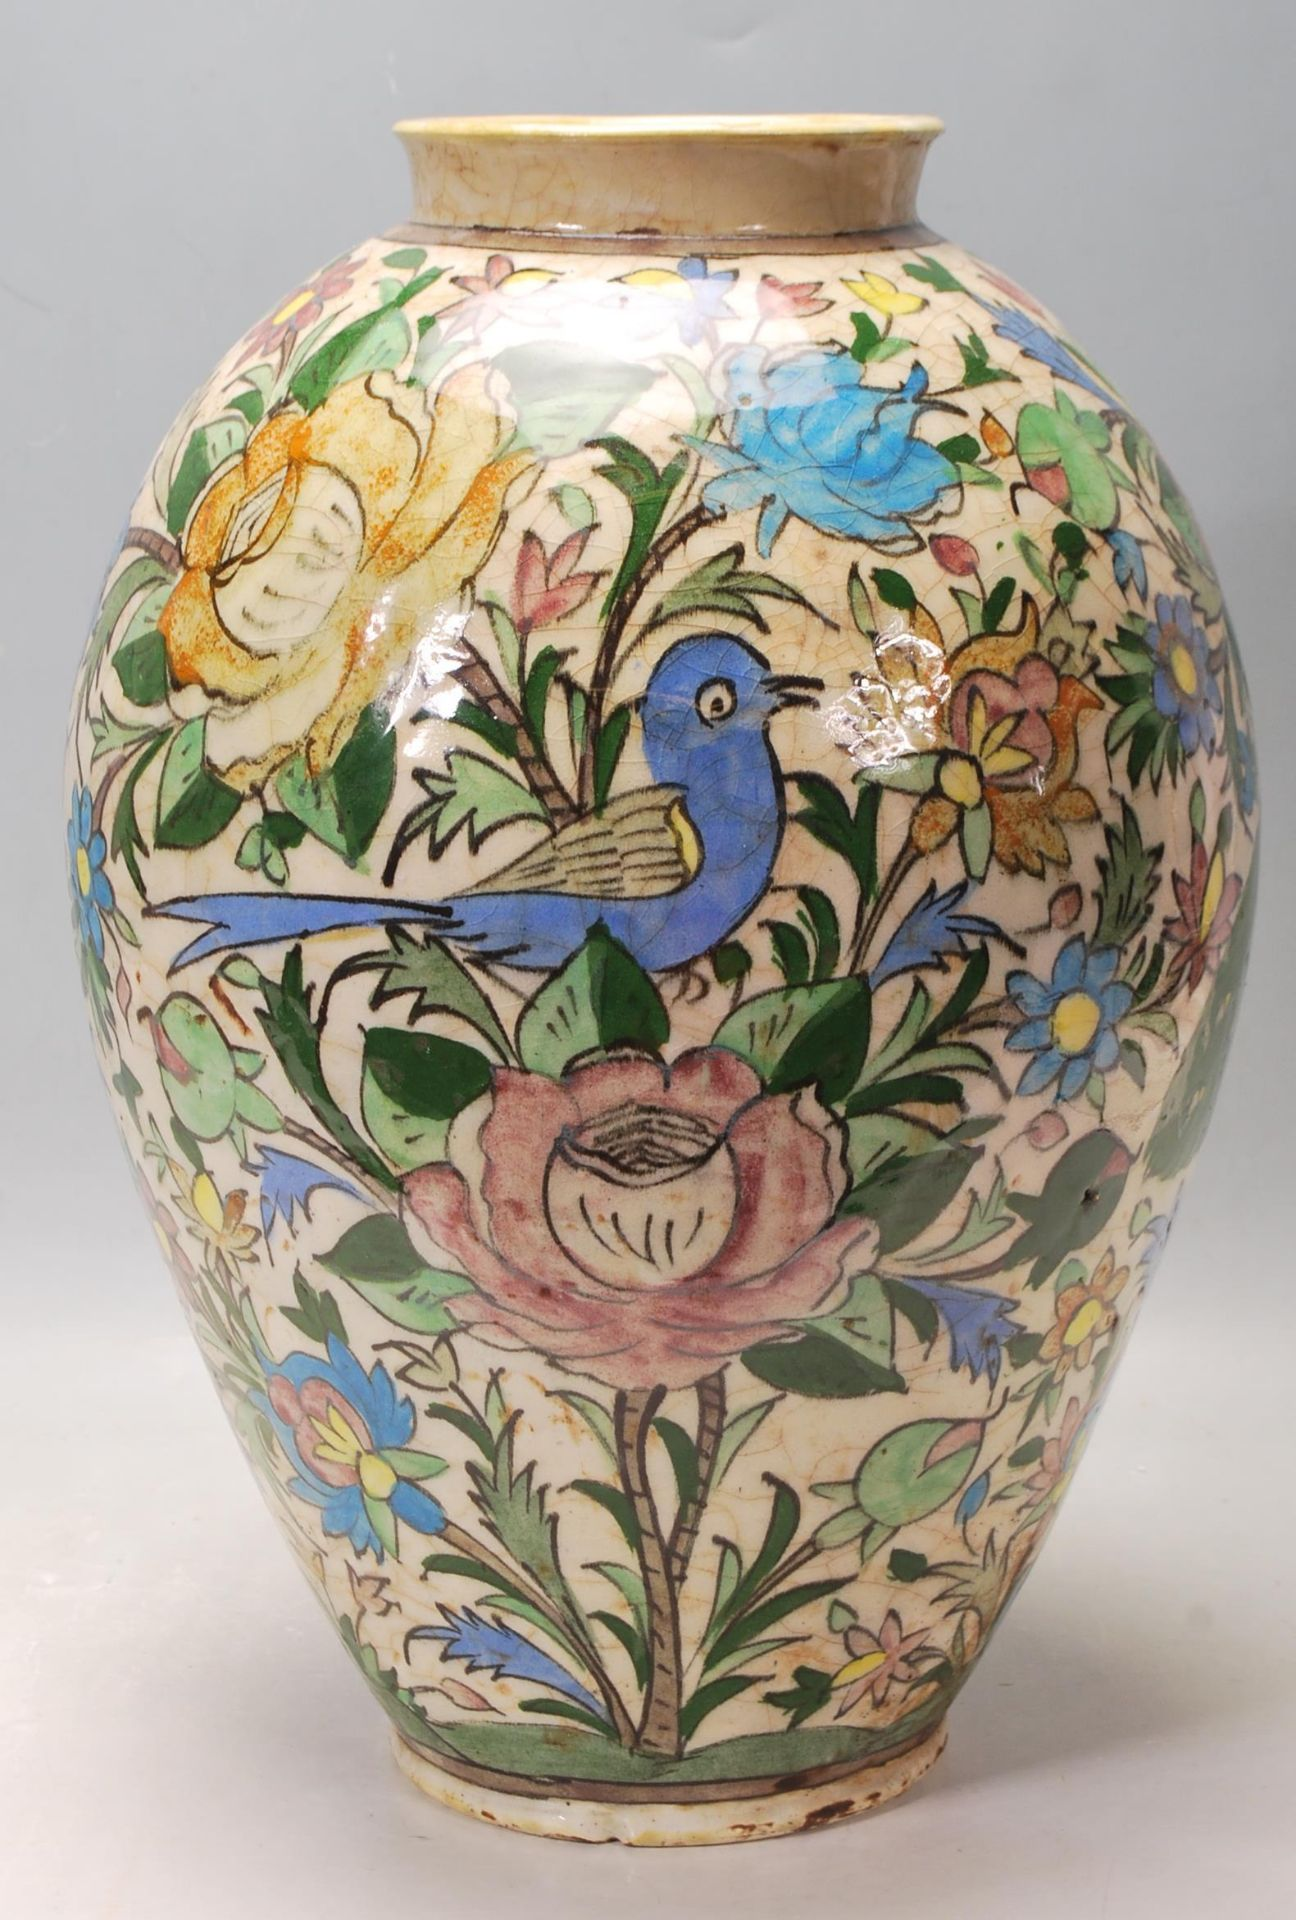 LATE 20TH CENTURY PERSIAN ISLAMIC VASE WITH POLYCHROME DECORATION - Image 2 of 7